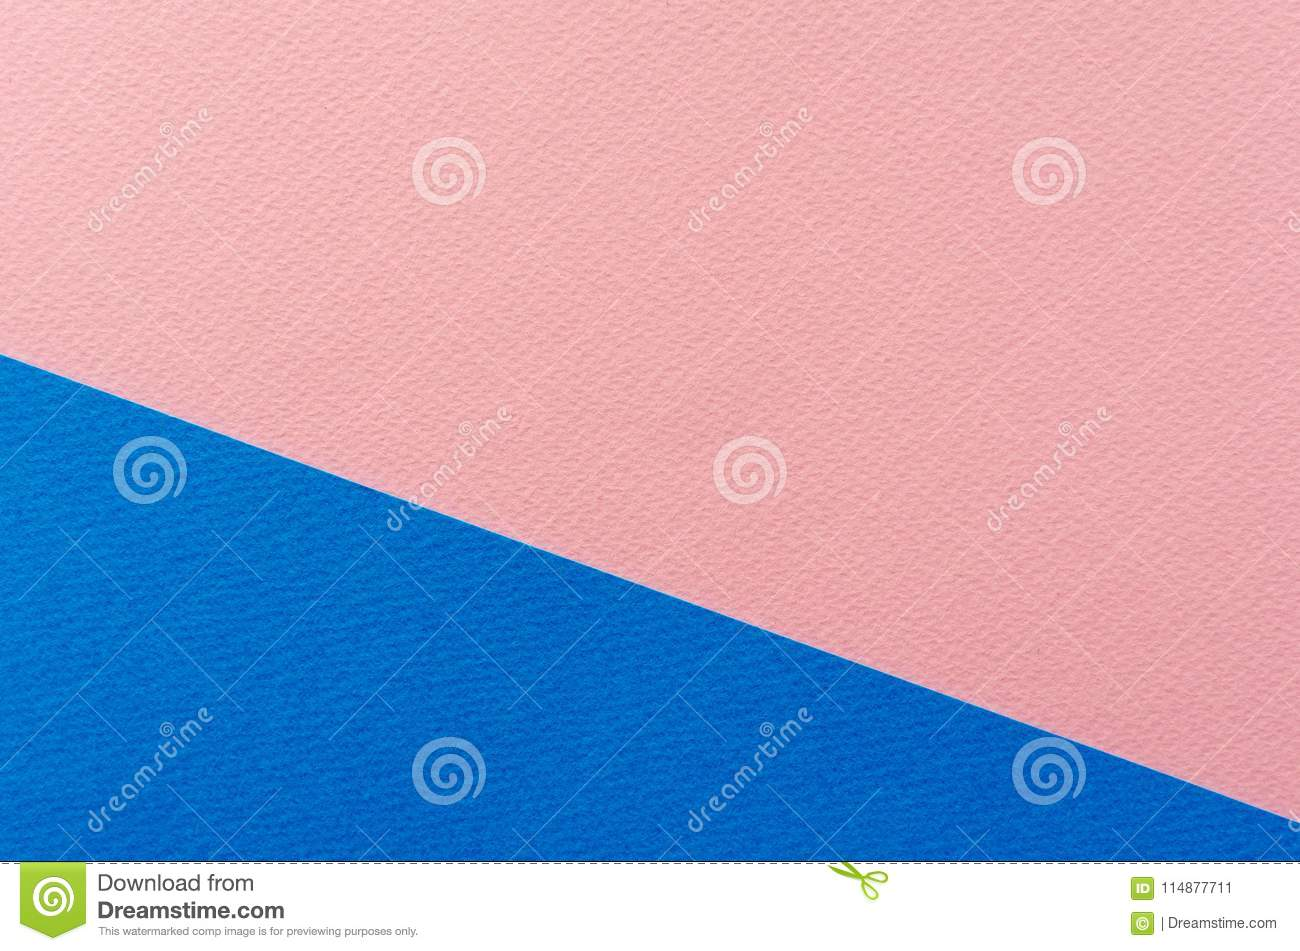 Colored geometric blue and pink paper texture background.